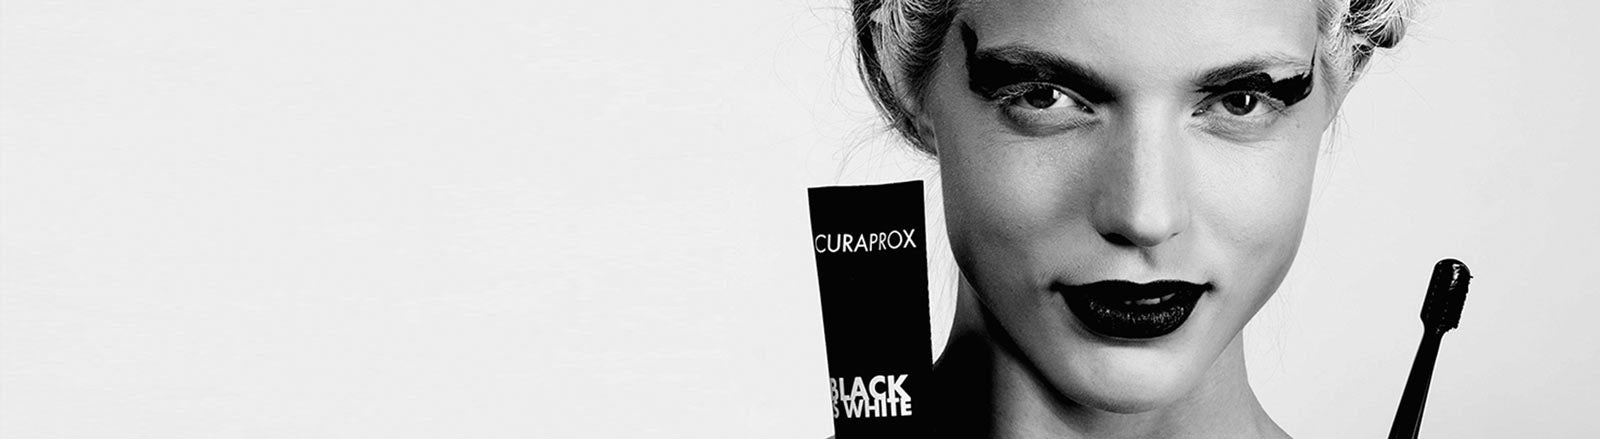 Woman holding Black is White products